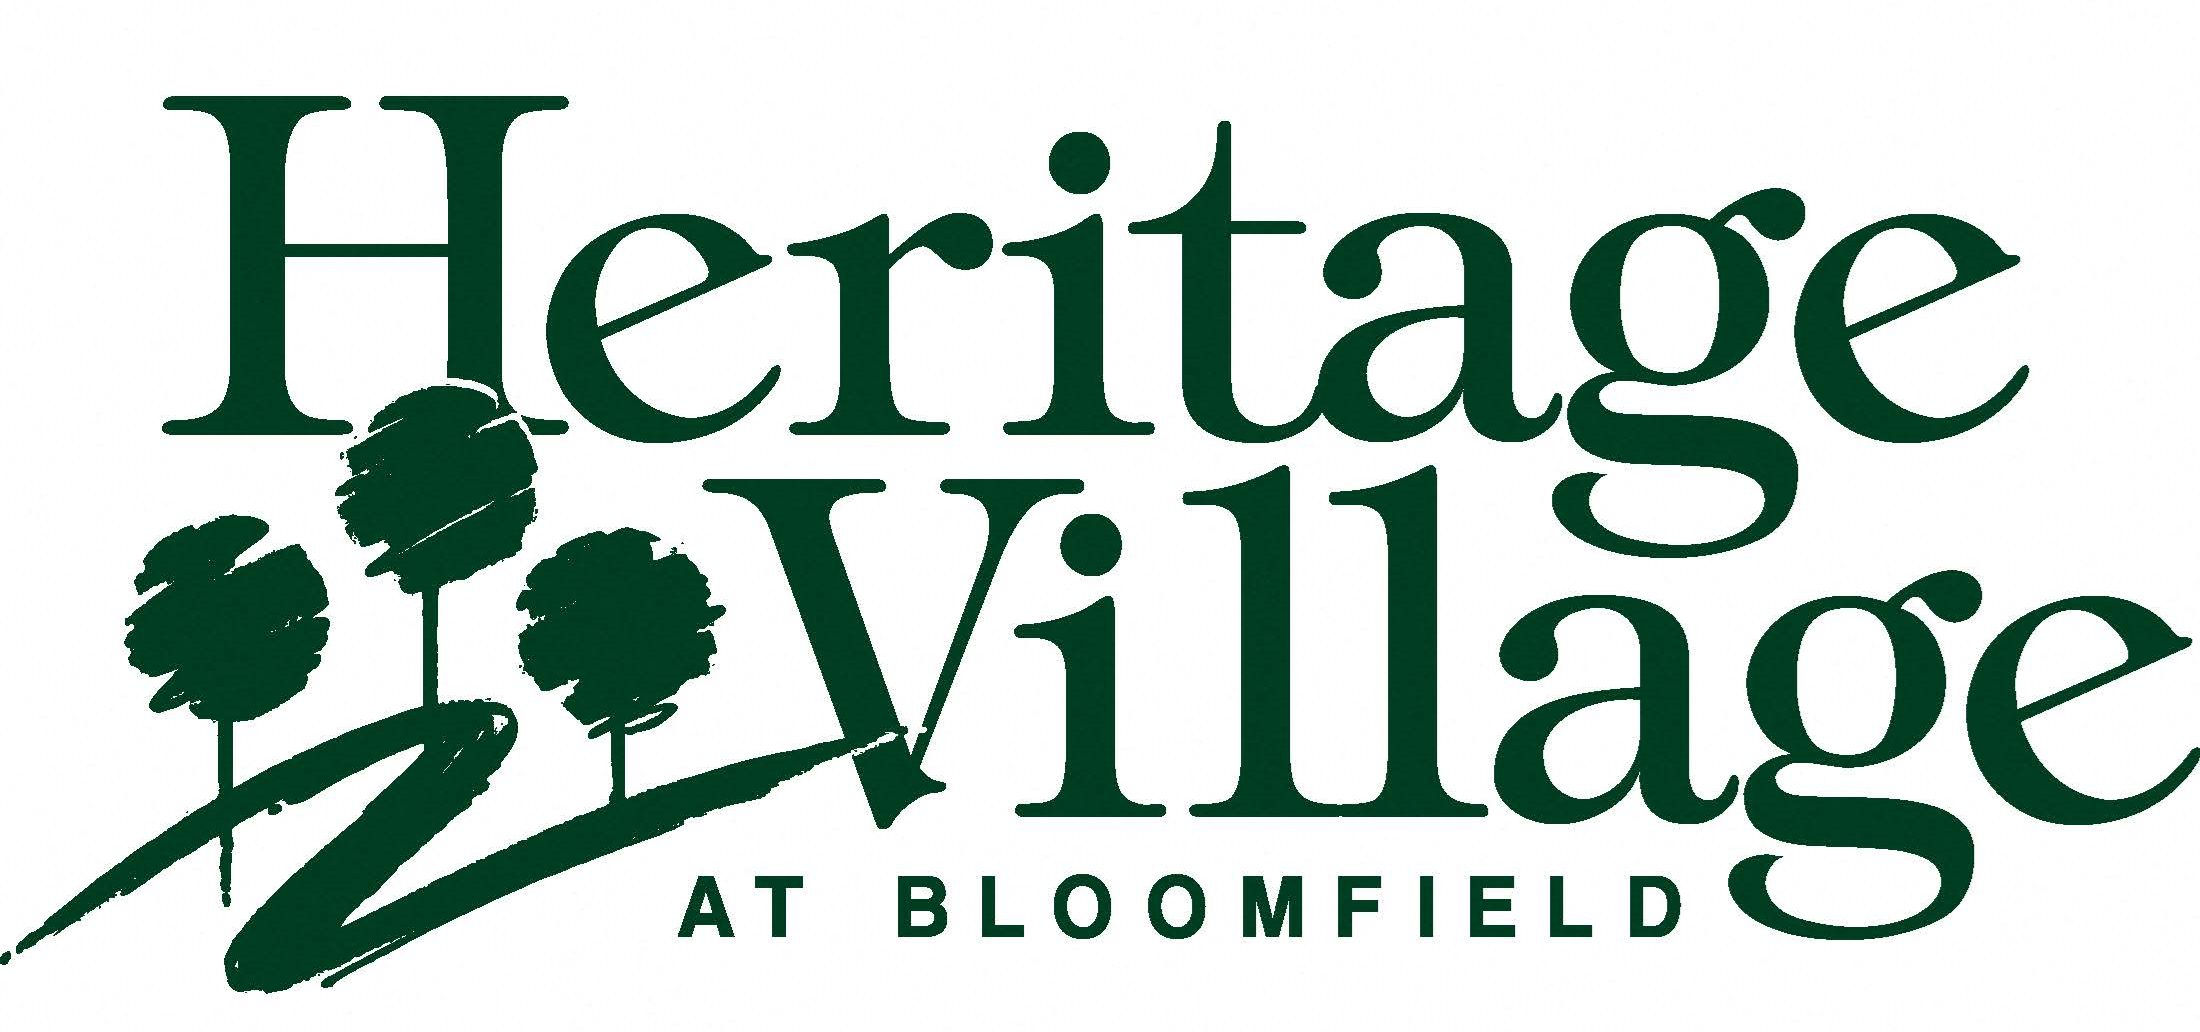 Bloomfield Township Property Logo 1